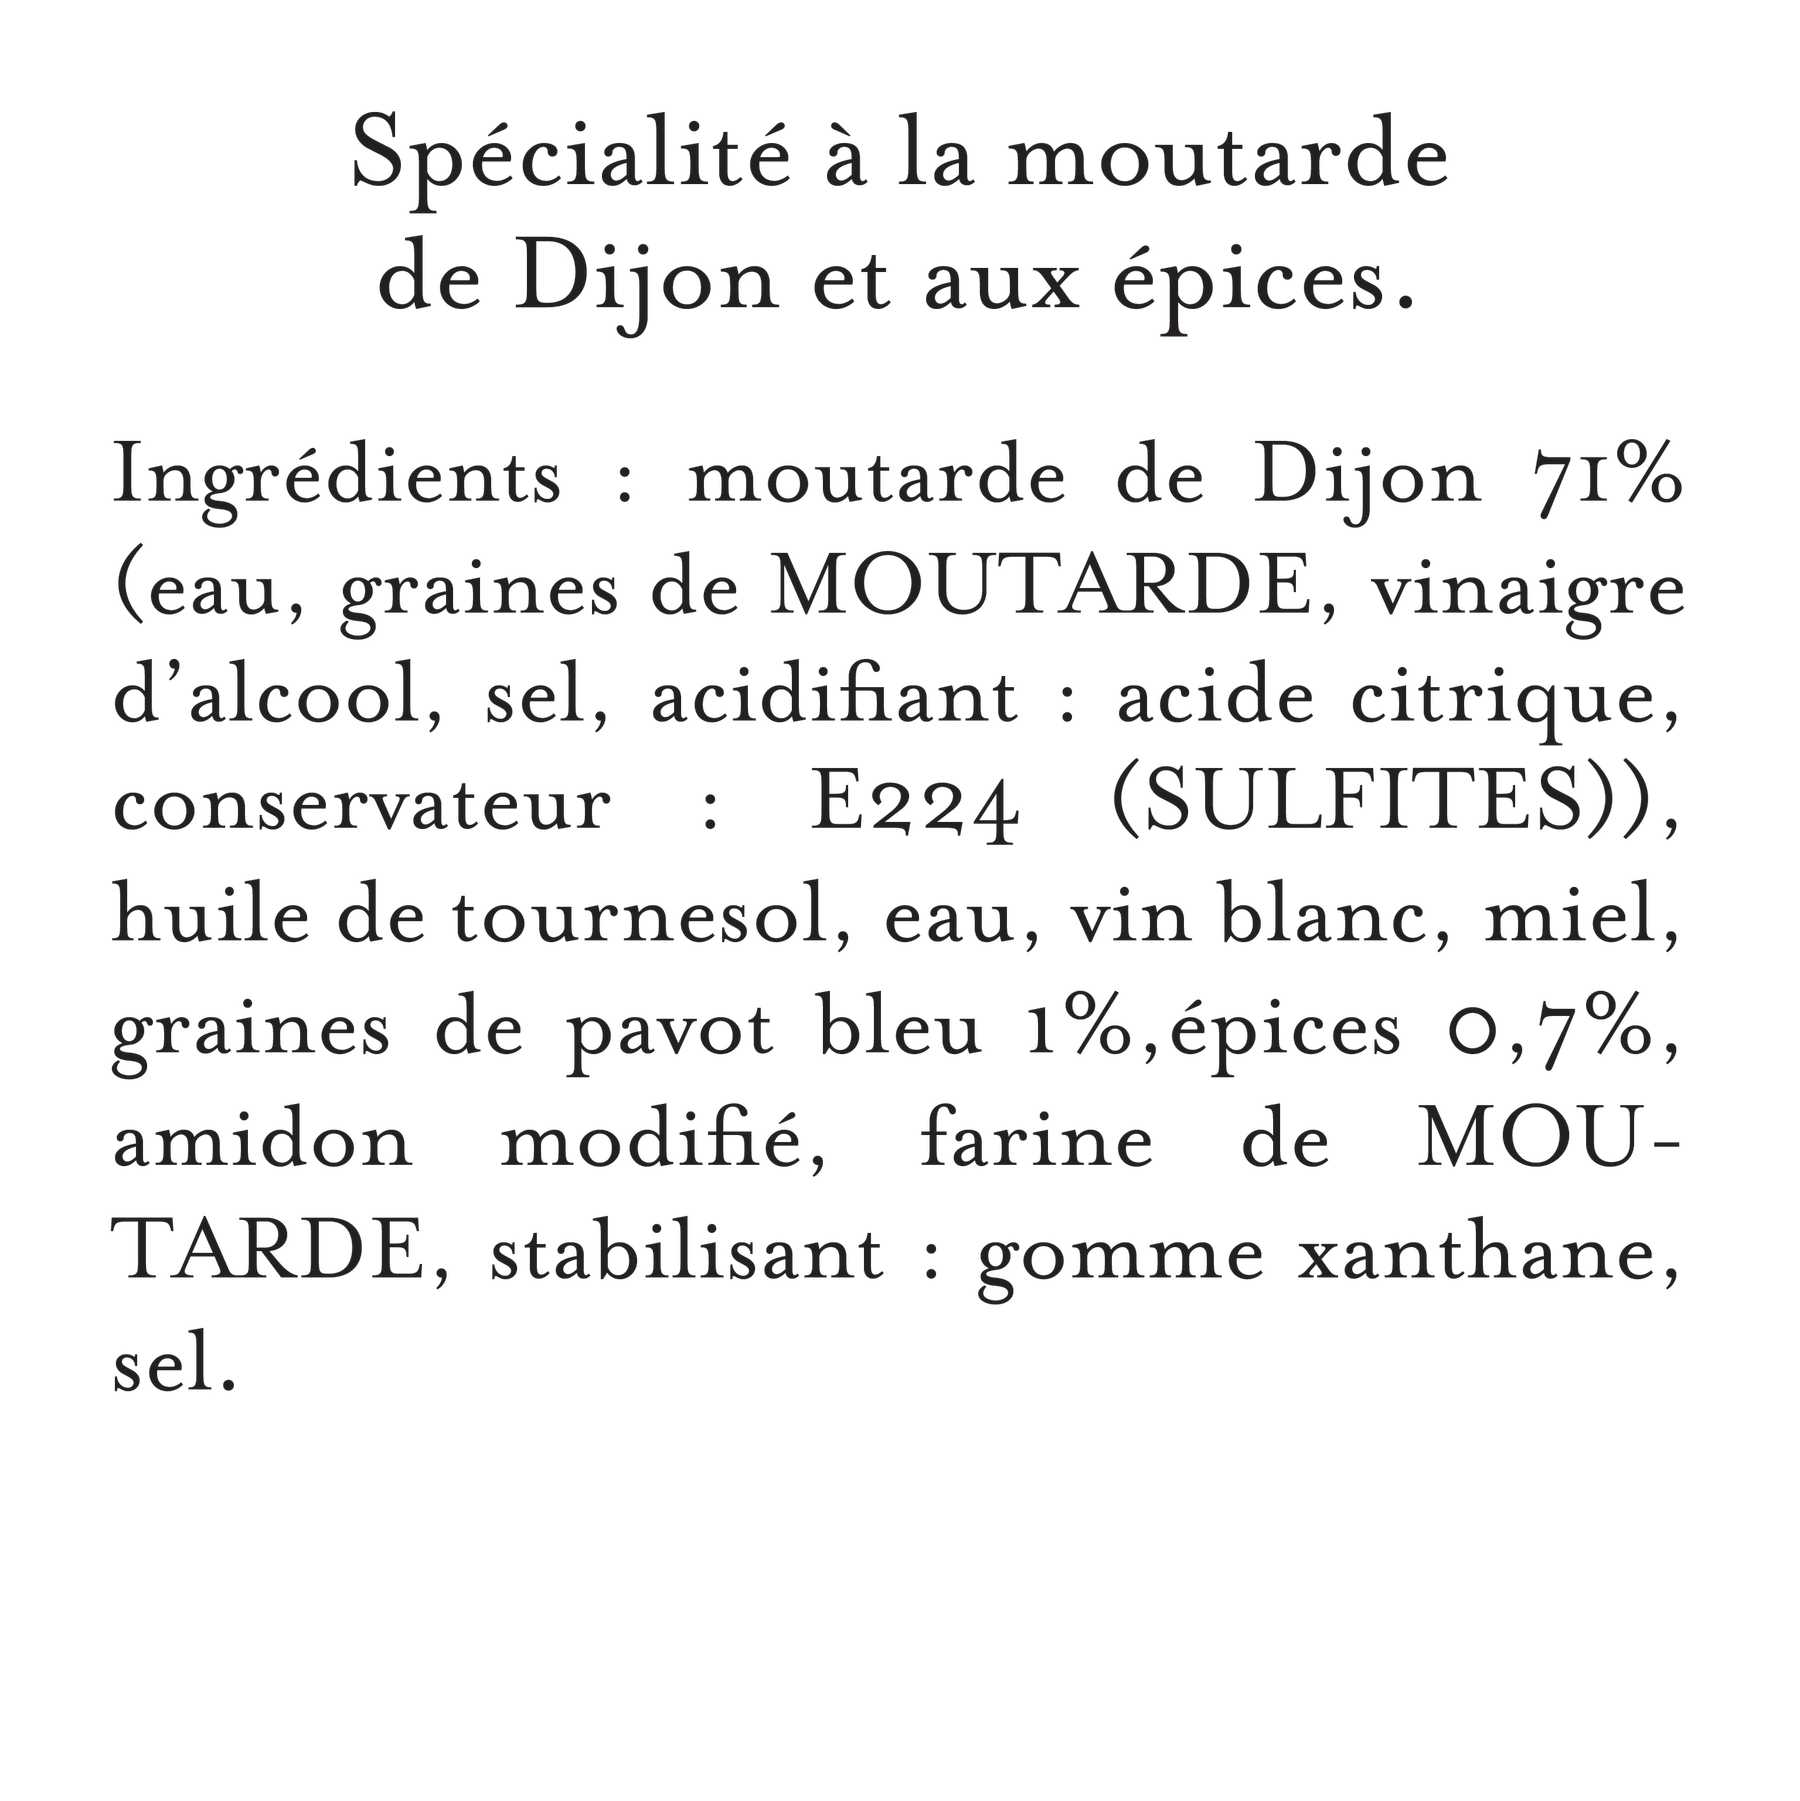 Maille Specialite a la Moutarde Fins Gourmets Pointe d'Epices Bocall 340g, description